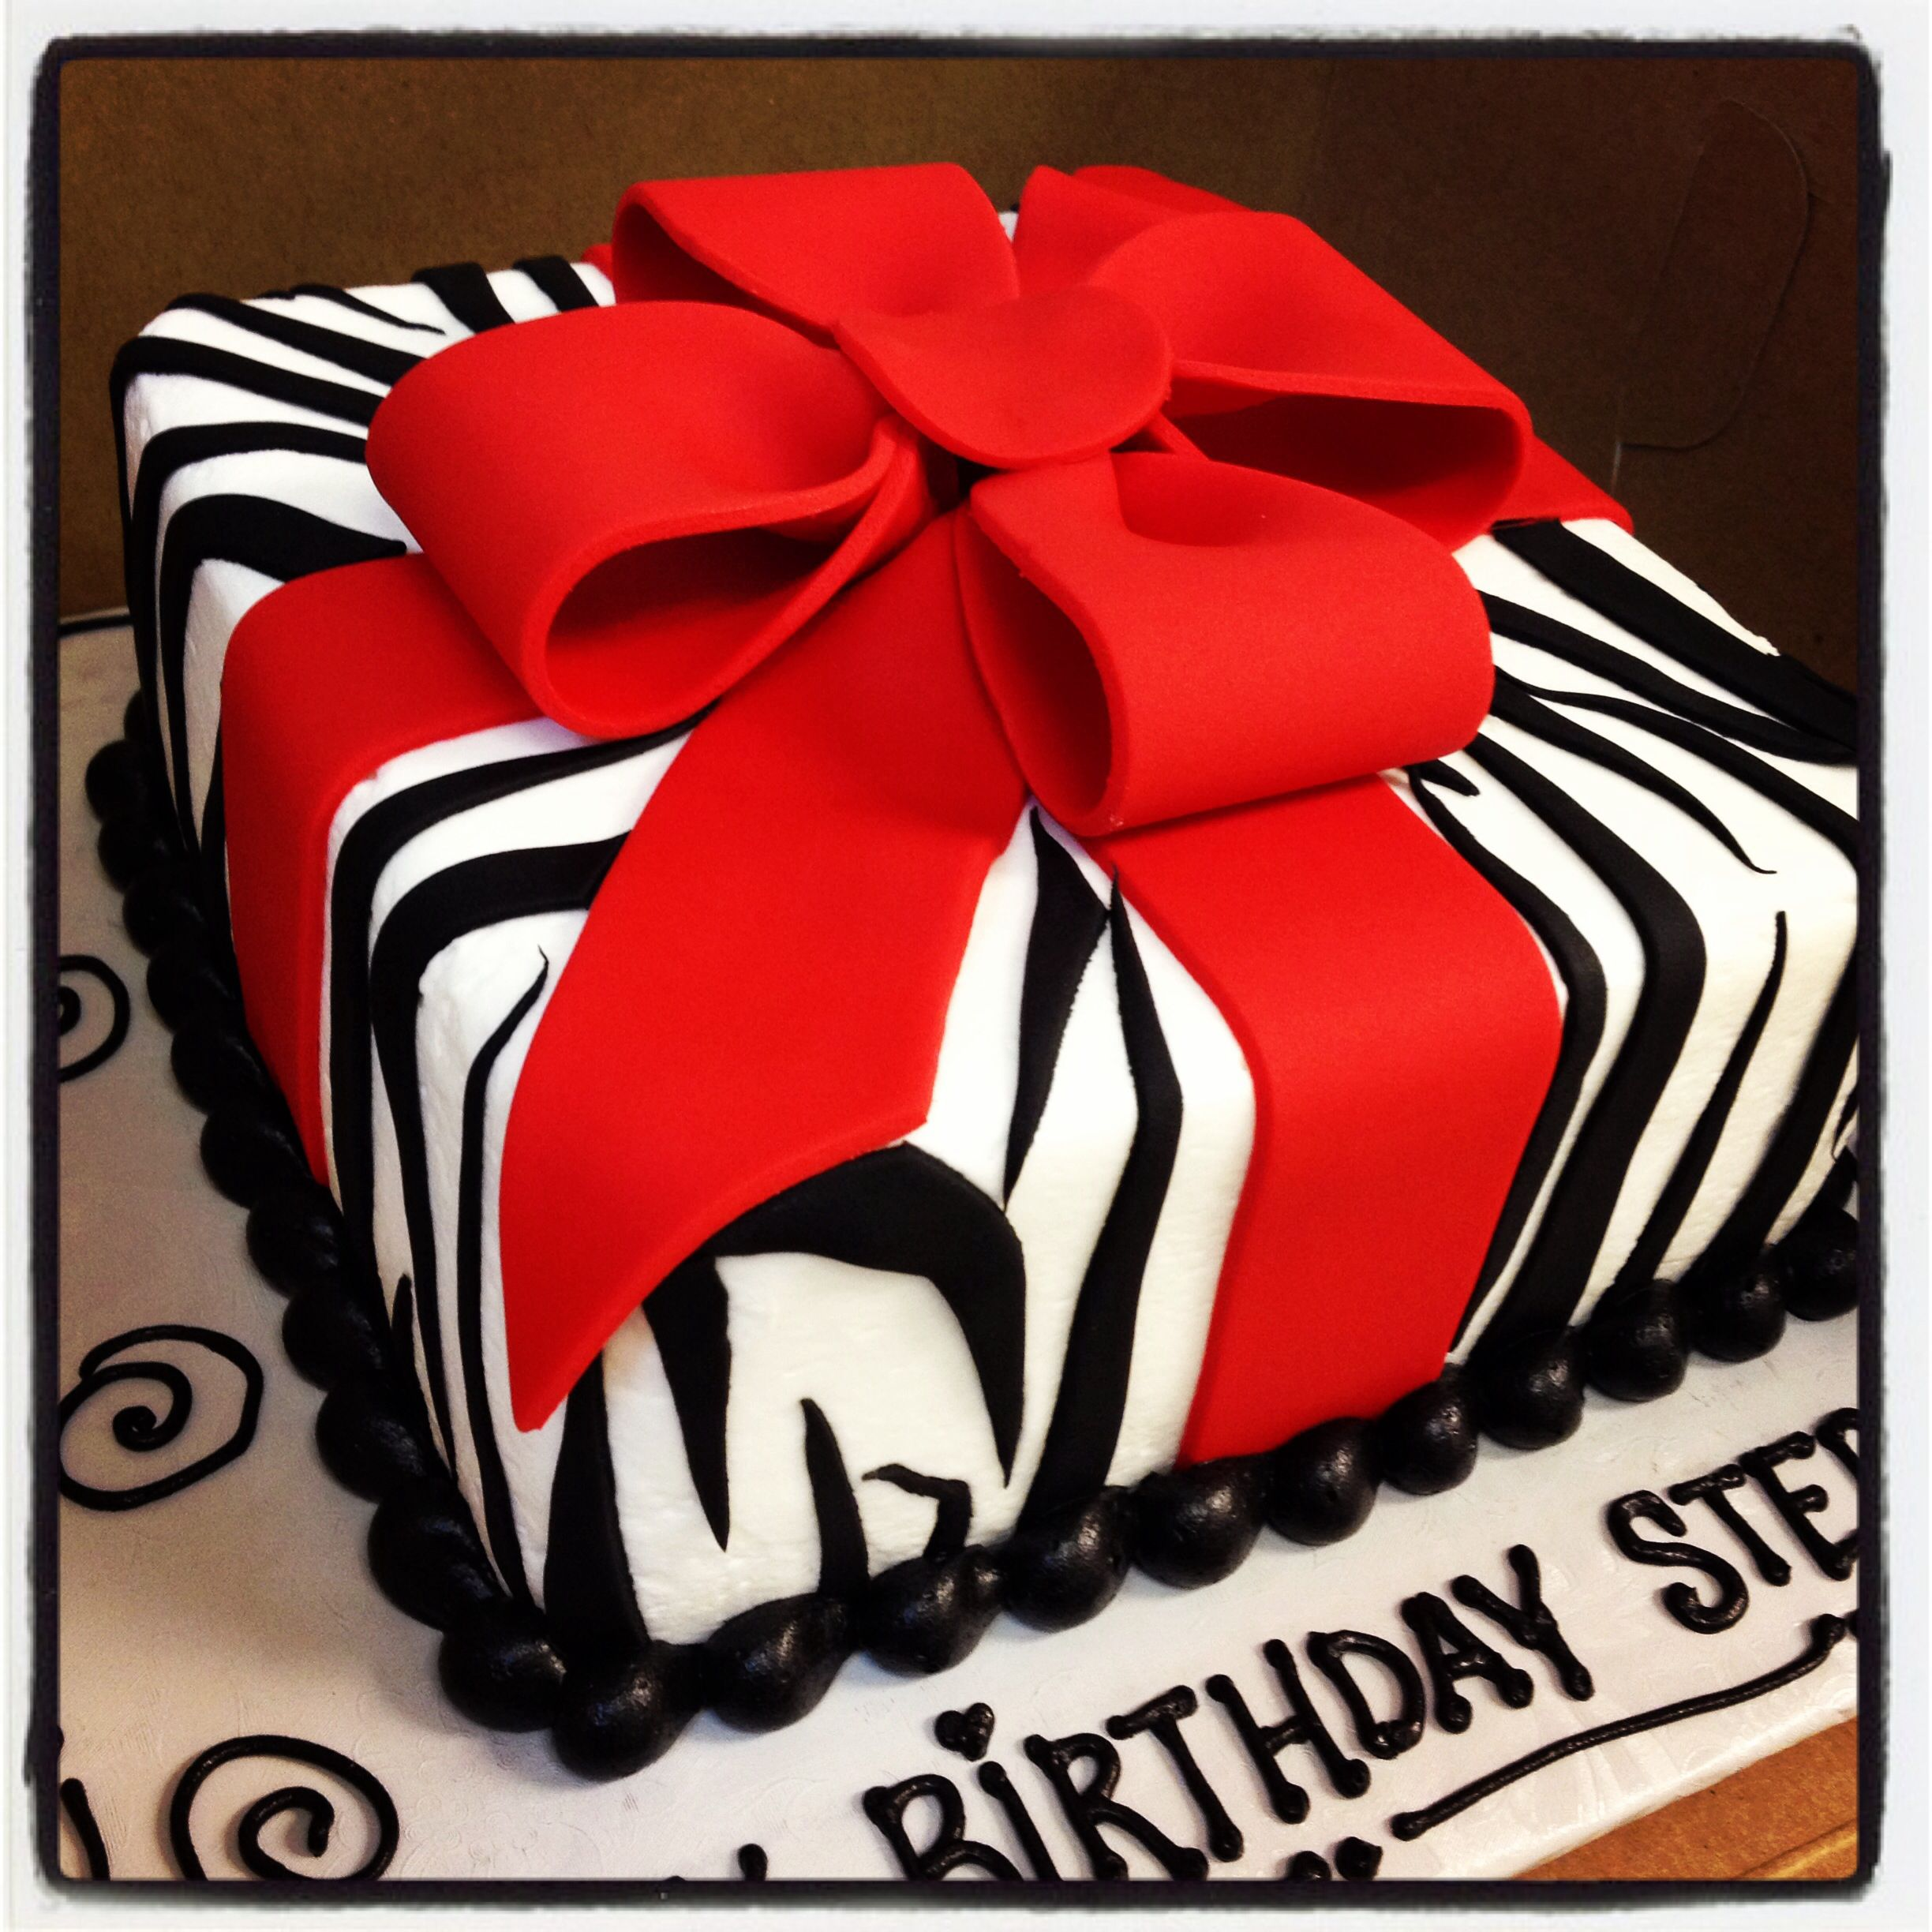 Black And White Zebra Striped Gift Box Cake With Red